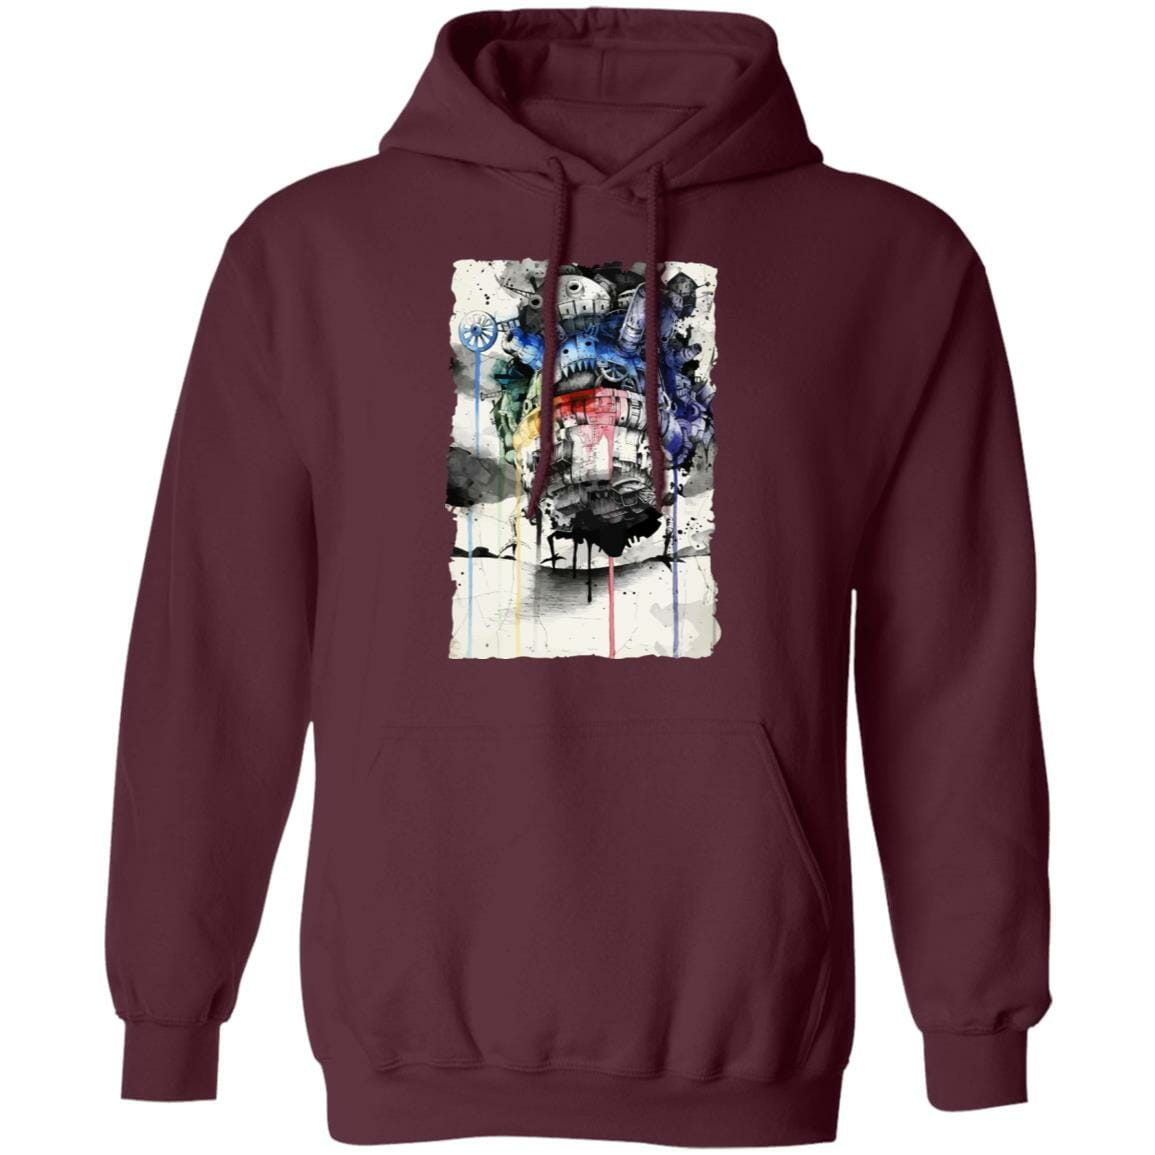 Howl's Moving Castle Impressionism Hoodie